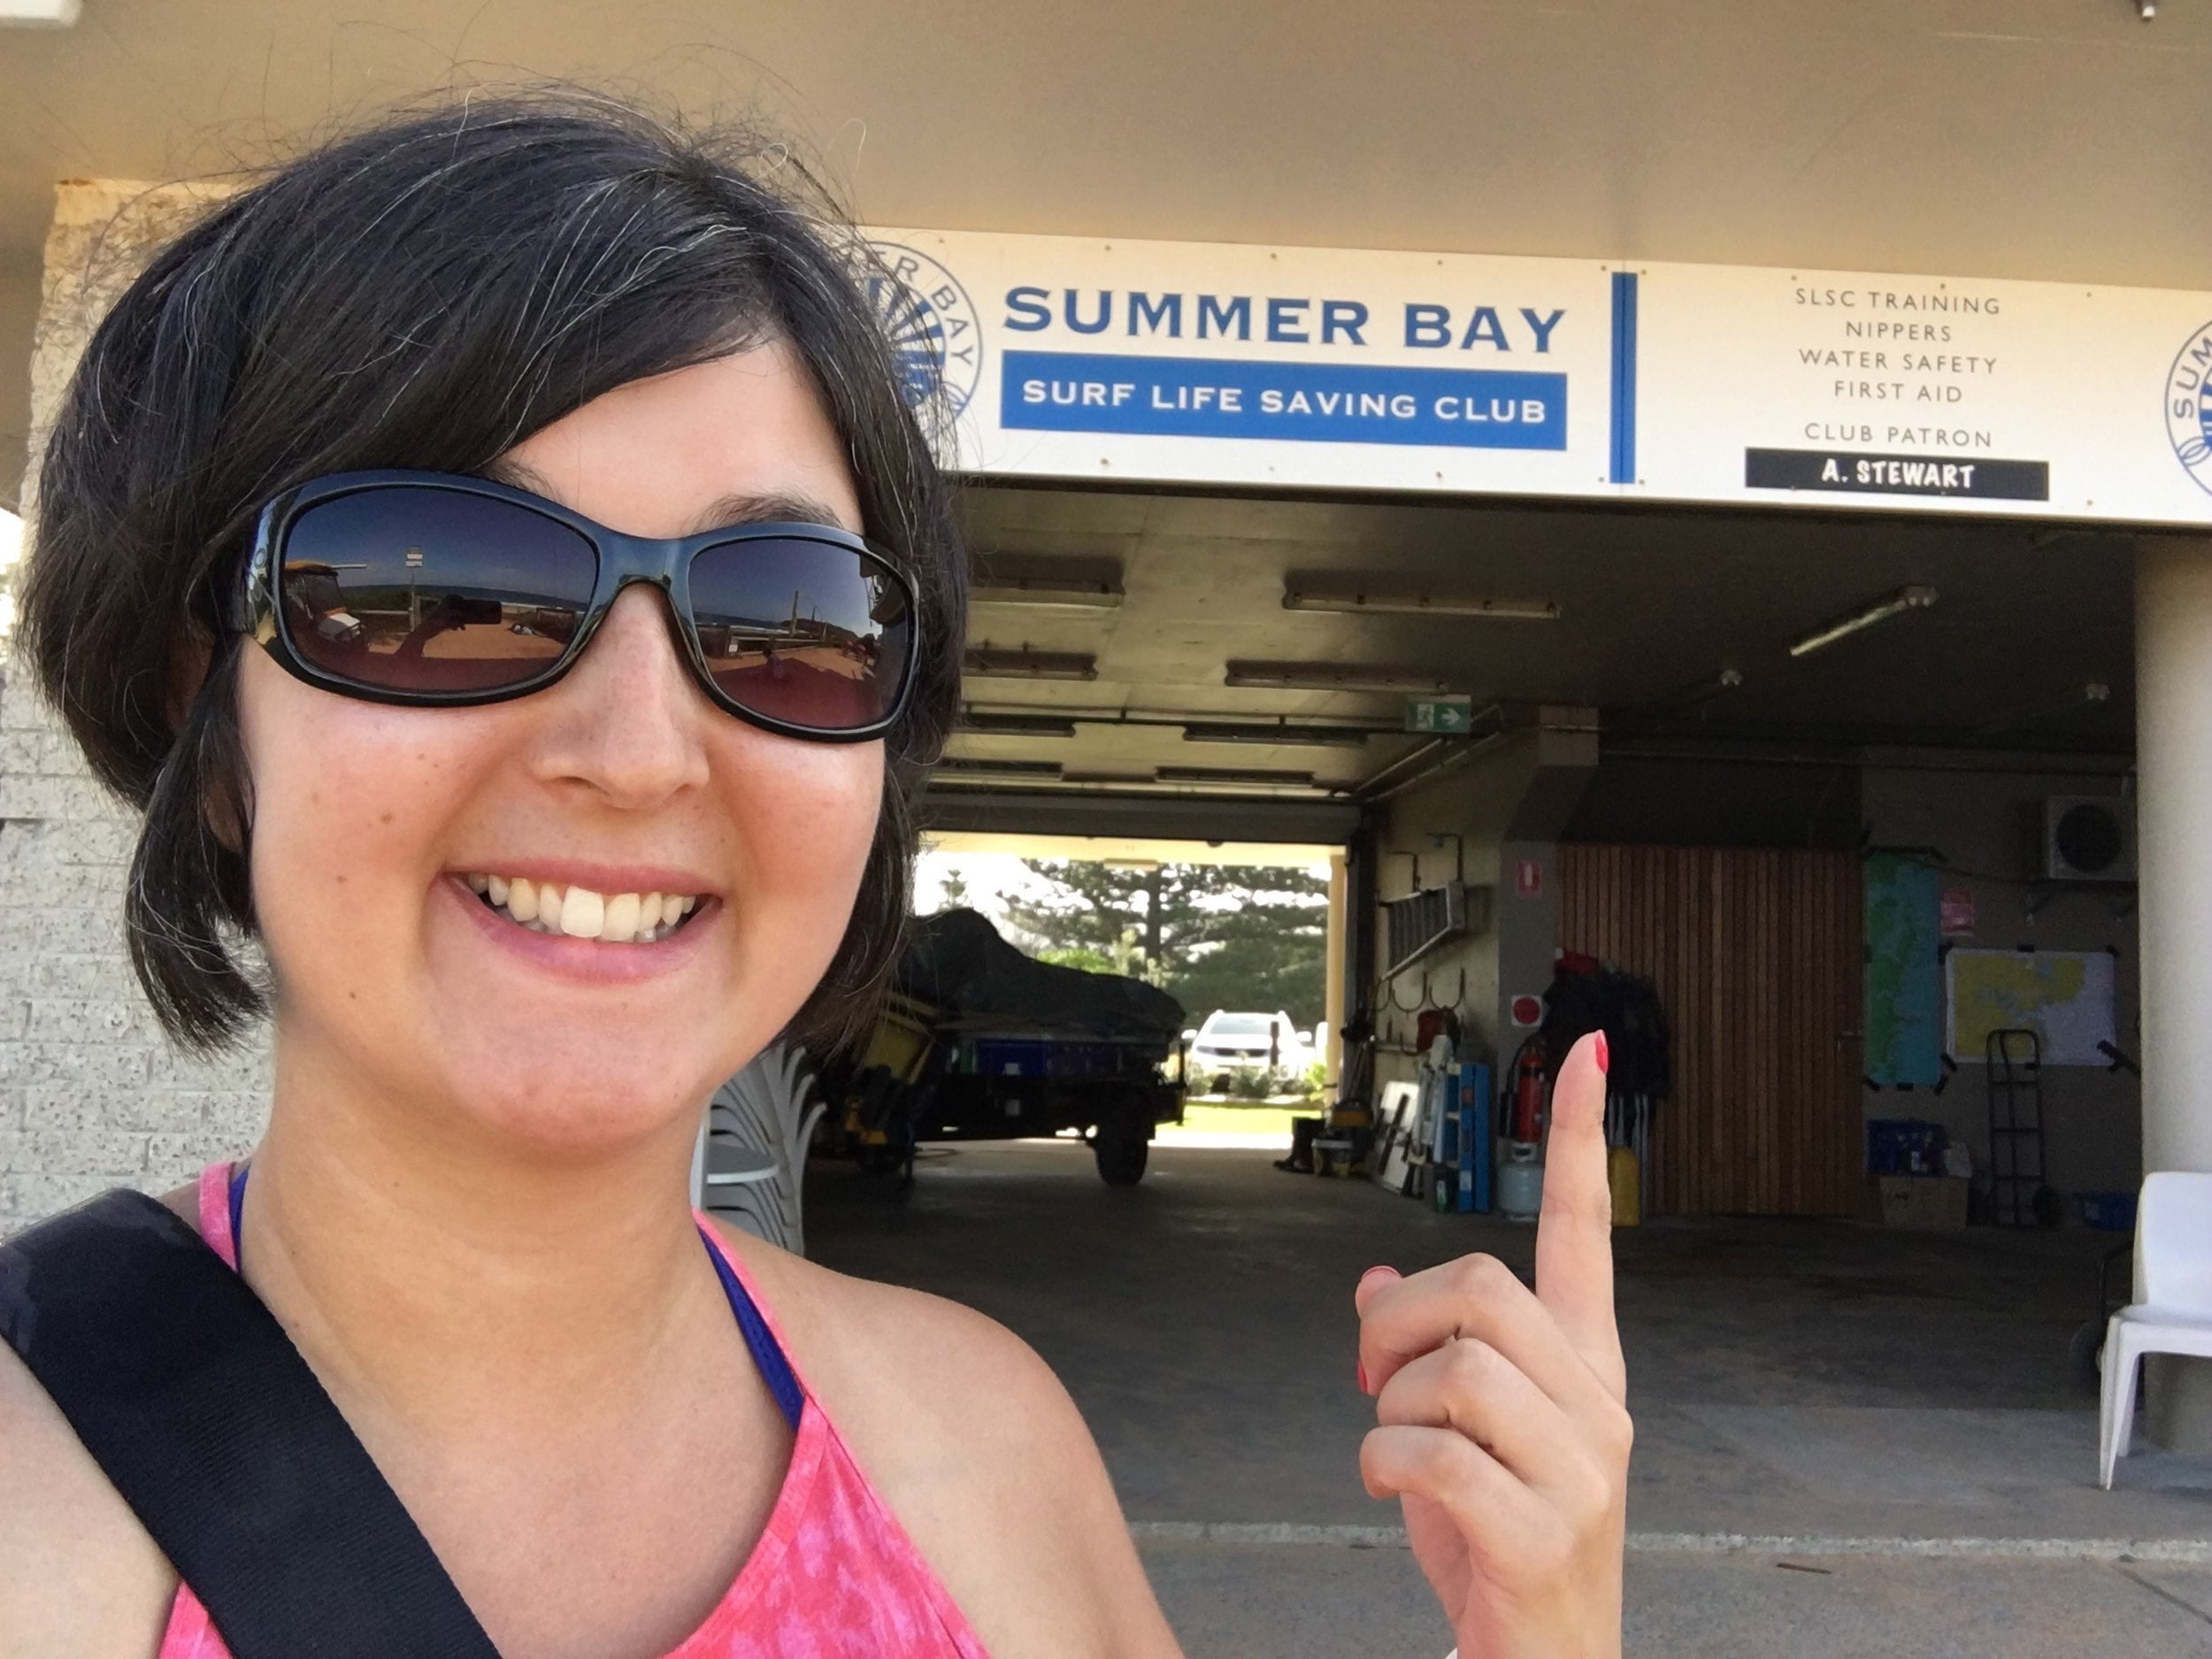 Geeking out at Summer Bay (Palm Beach)